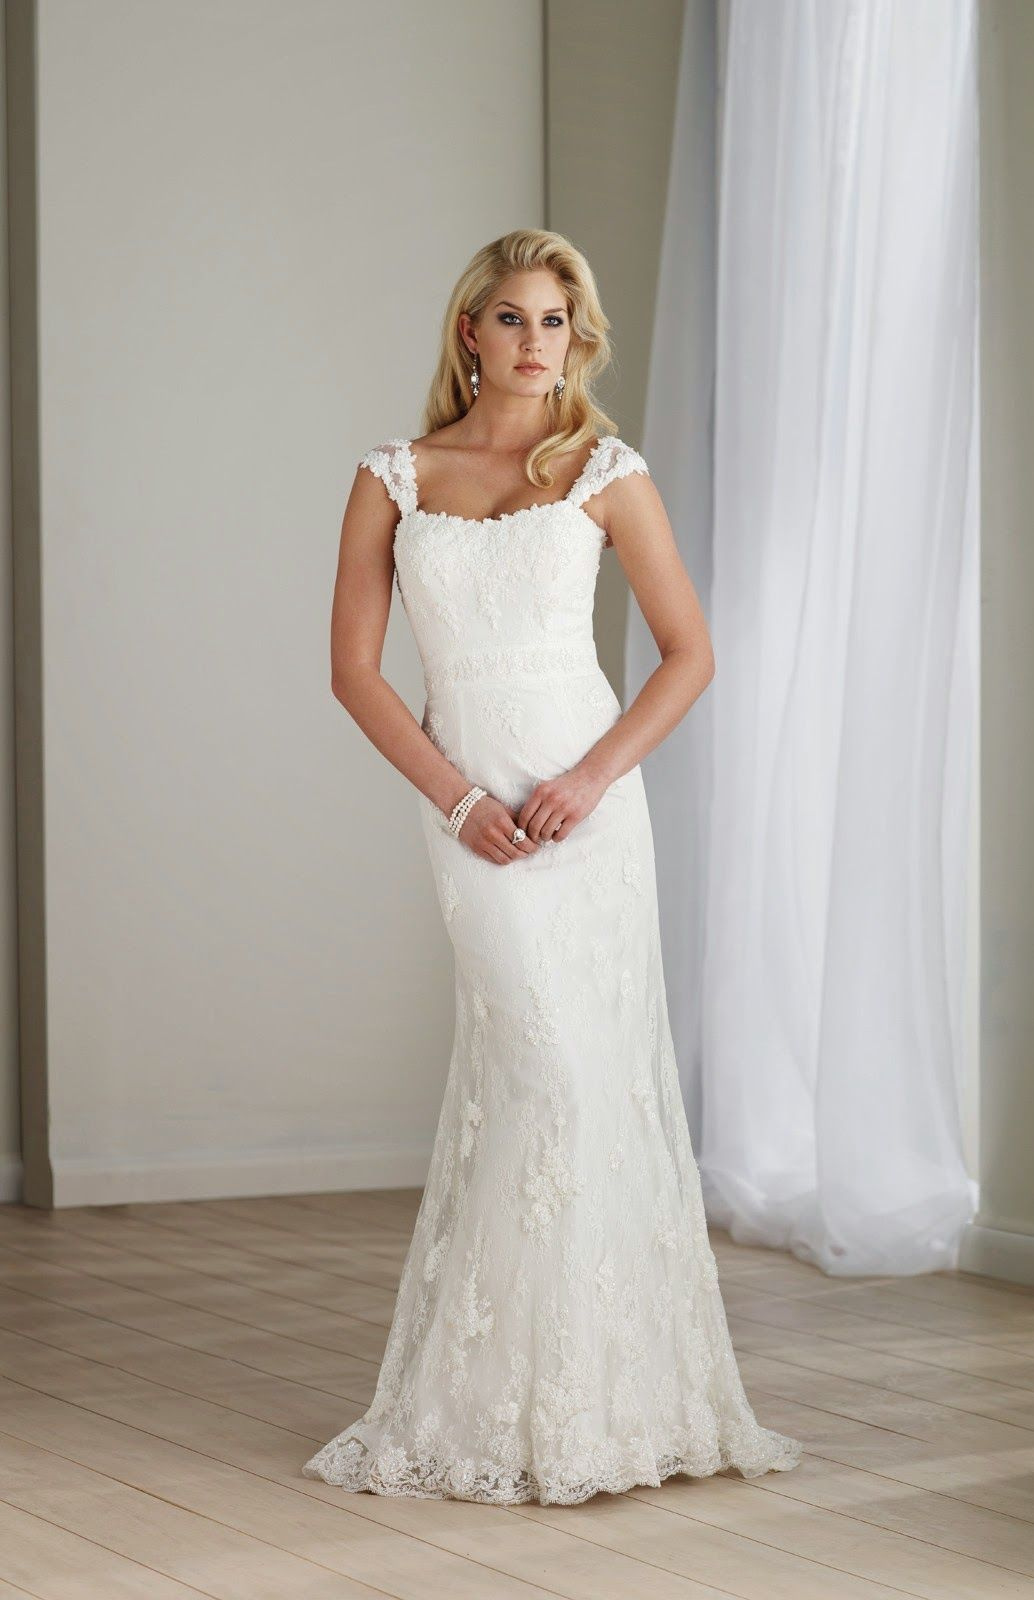 Wedding Dresses for Older Brides over 40, 50, 60, 70 | Brautkleider